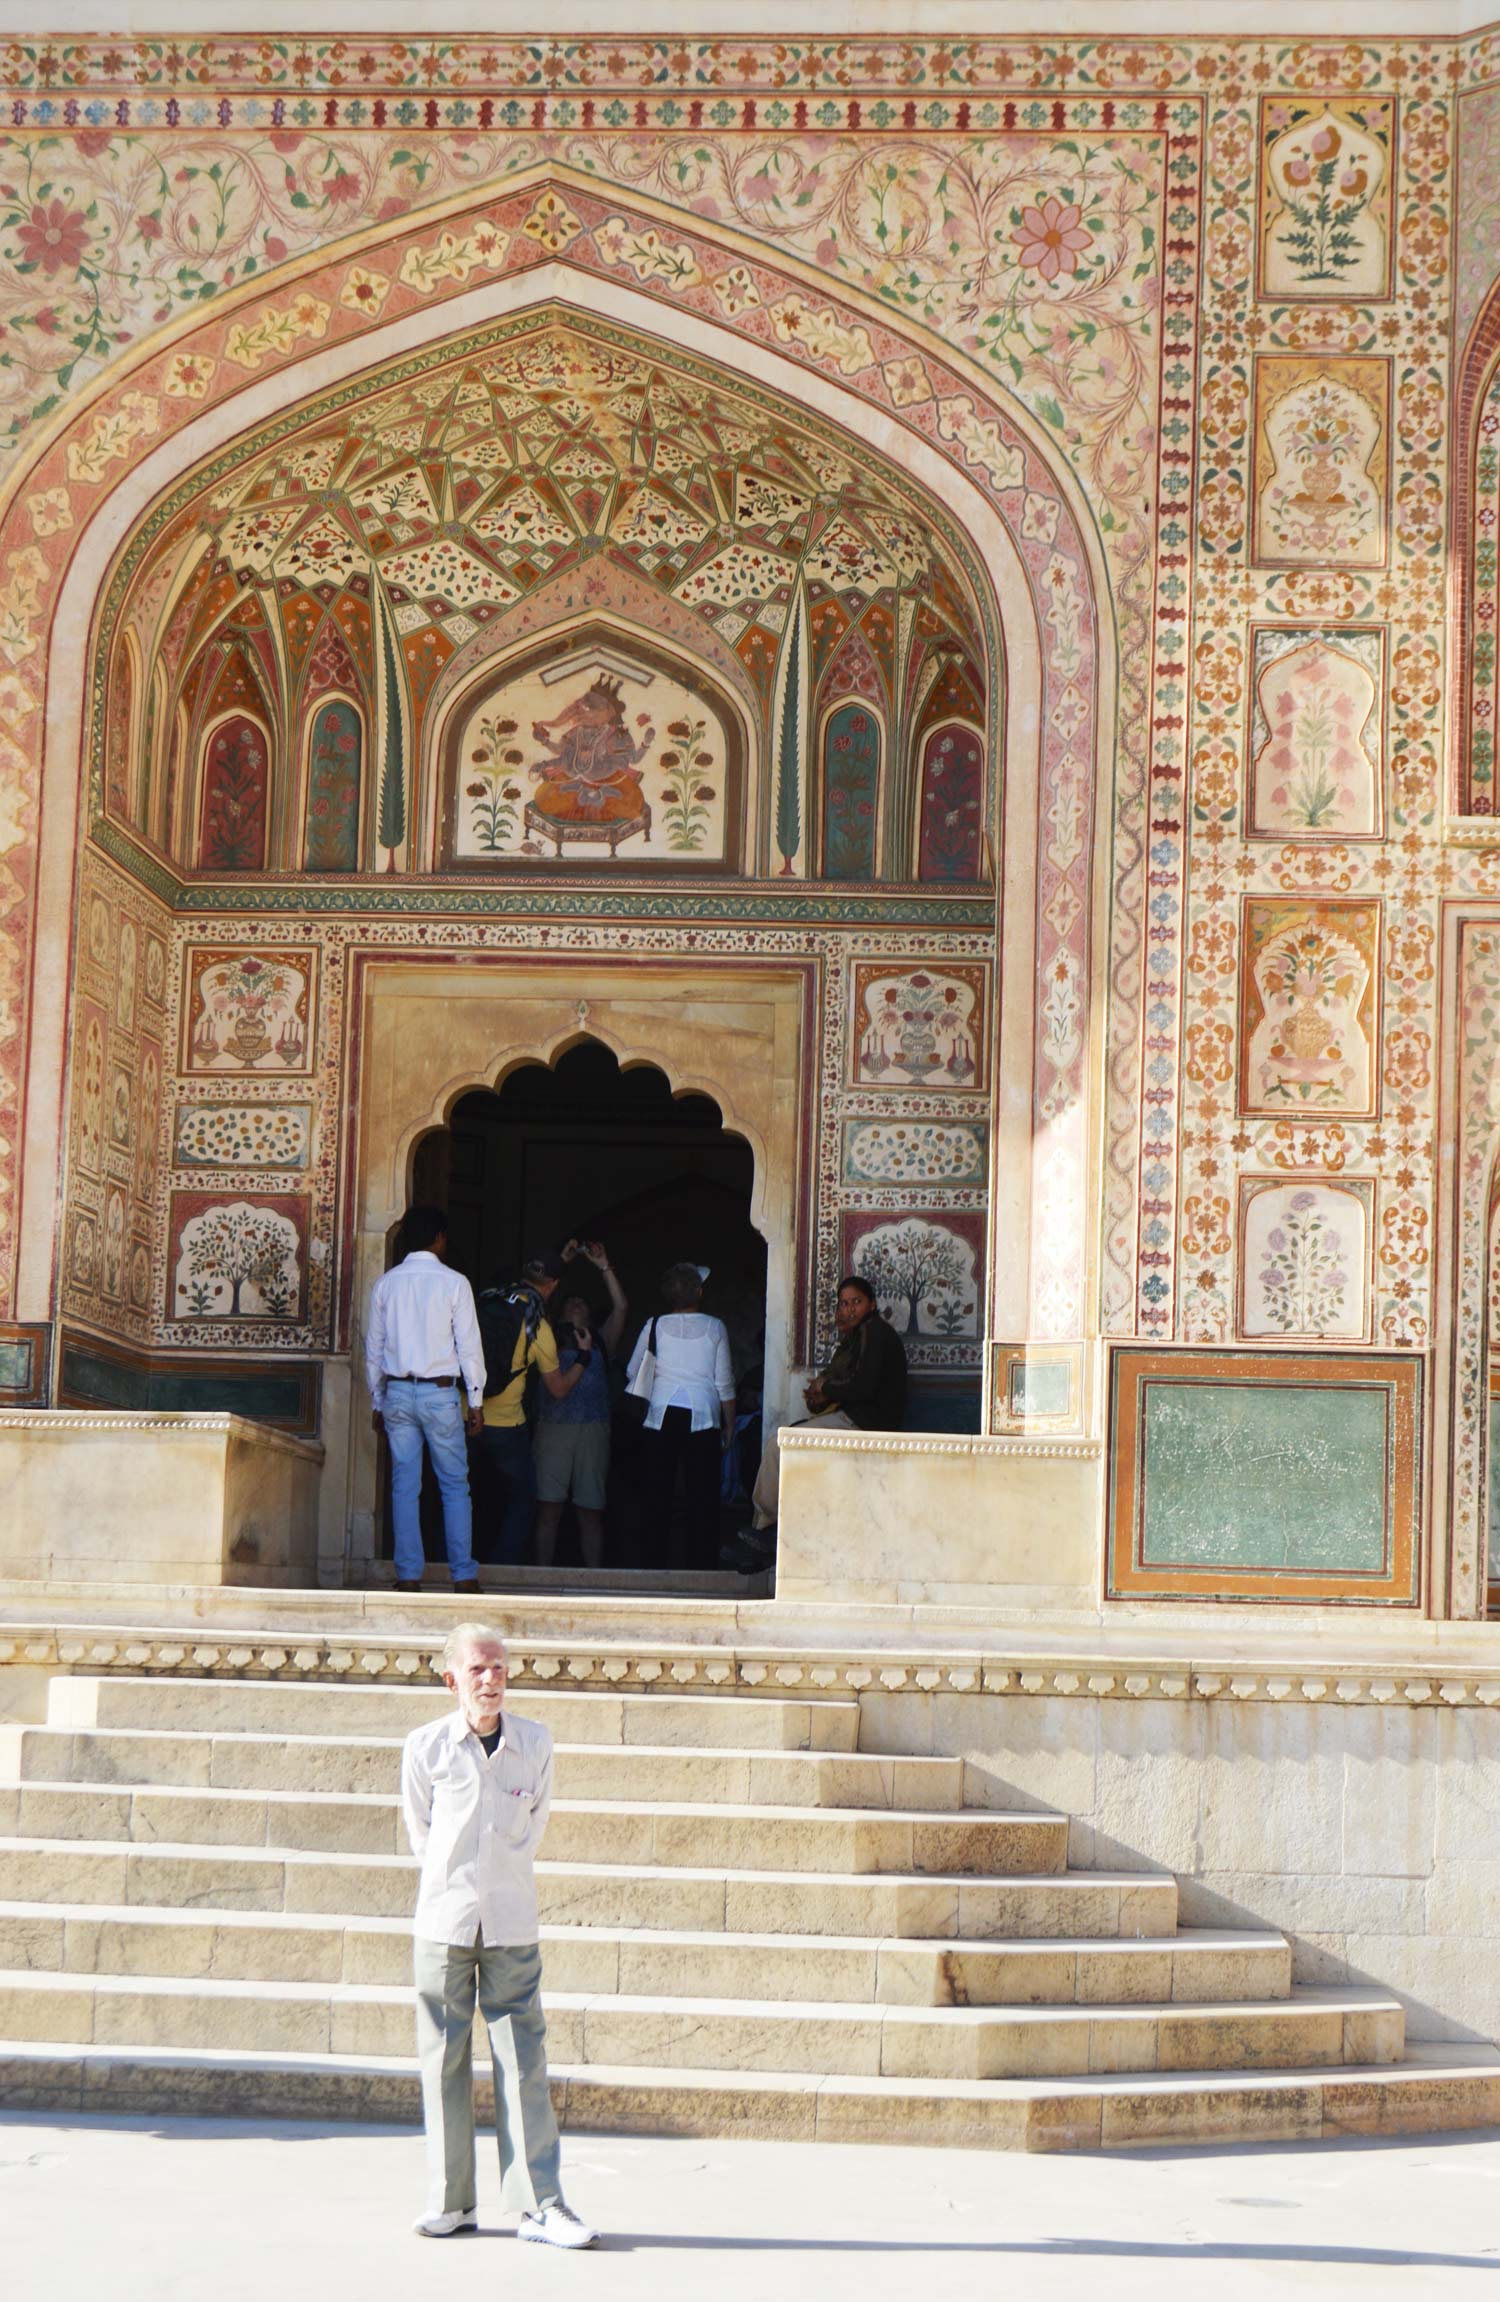 Our guide, standing in front of one of the many intricate buildings within the fort. The paint is all original.